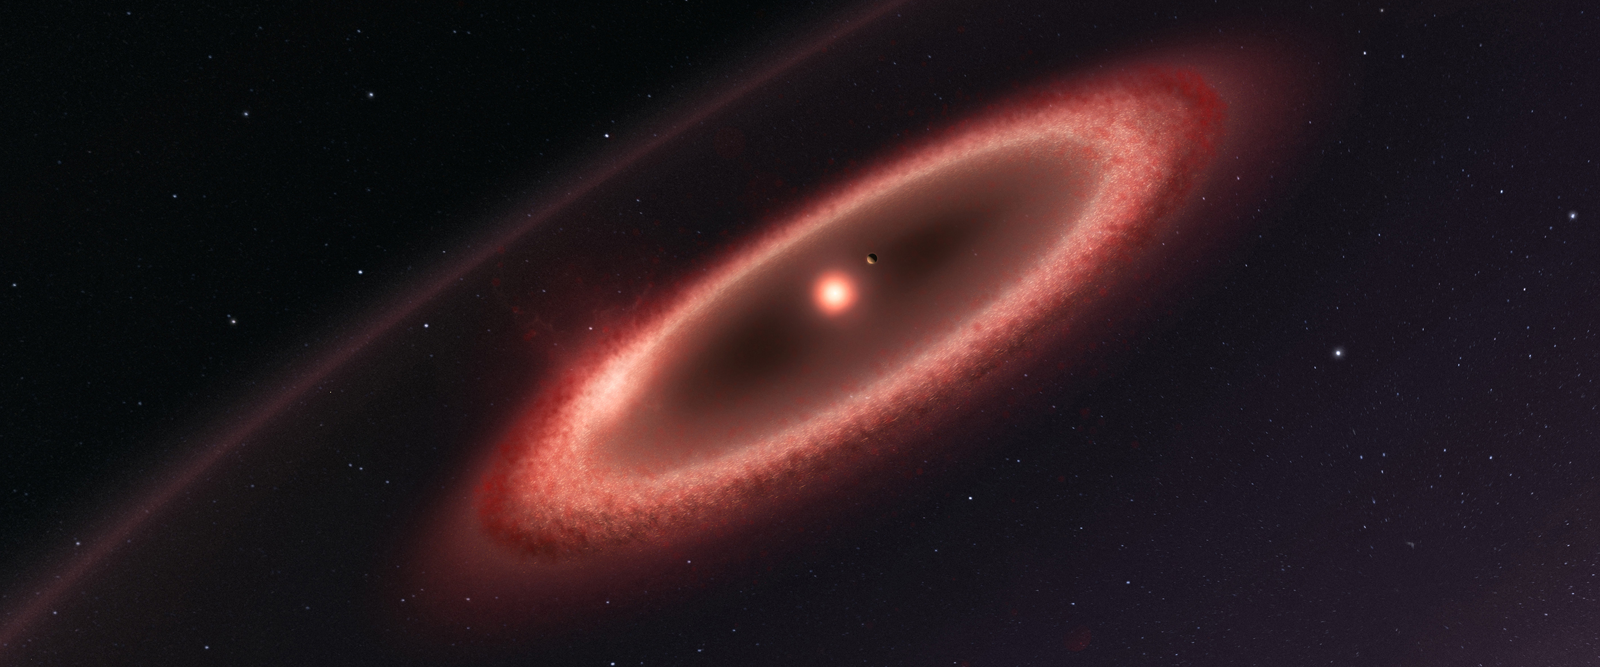 Nearest exoplanet may be part of larger system